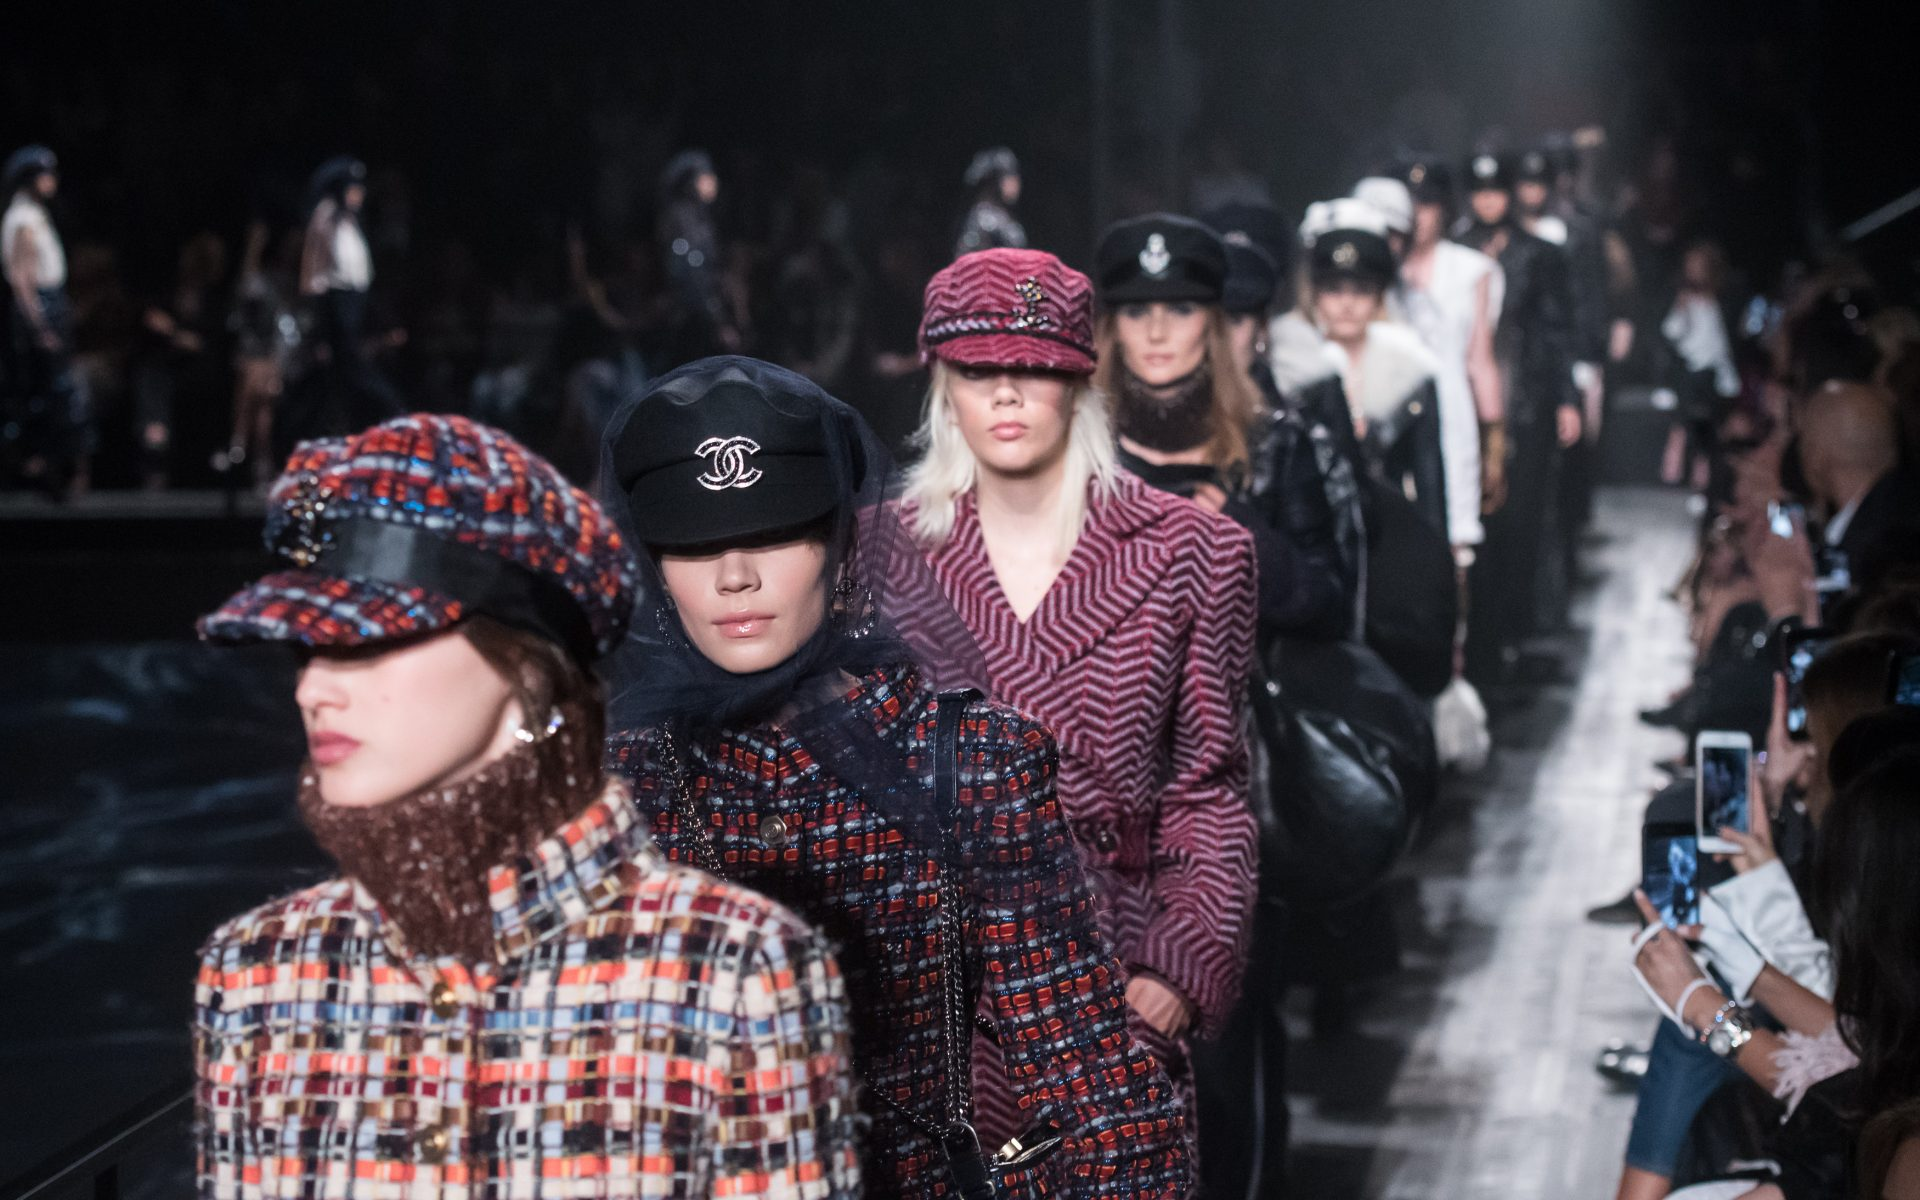 d4977f7f0ea Models walk the runway during the Chanel Replica Show in Moscow